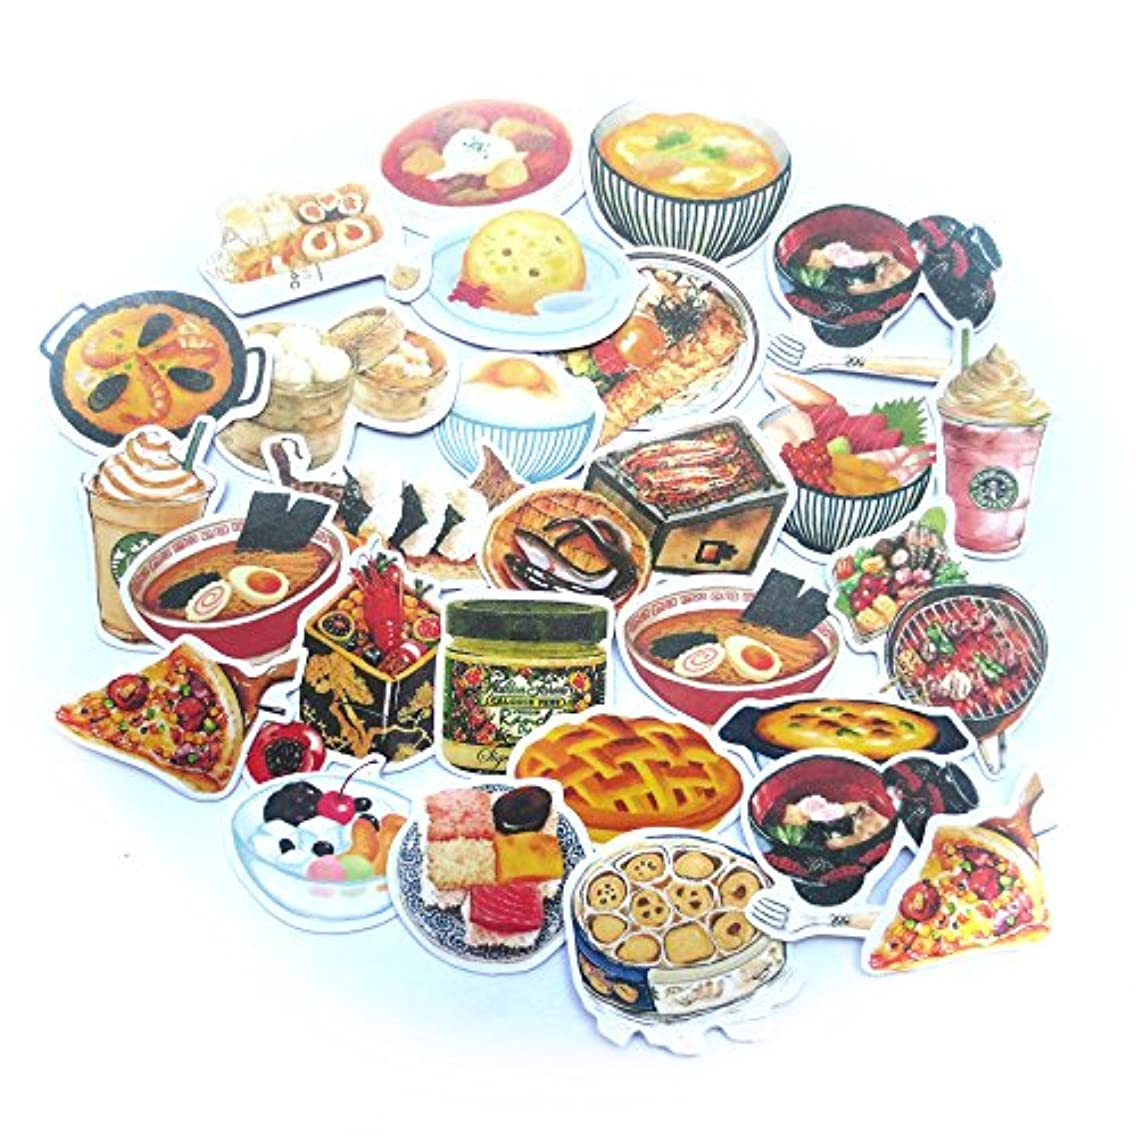 DadaCrafts(TM) 32PCS 3cm - 6cm Large Bag Packaged Stickers Sets (Food 2)